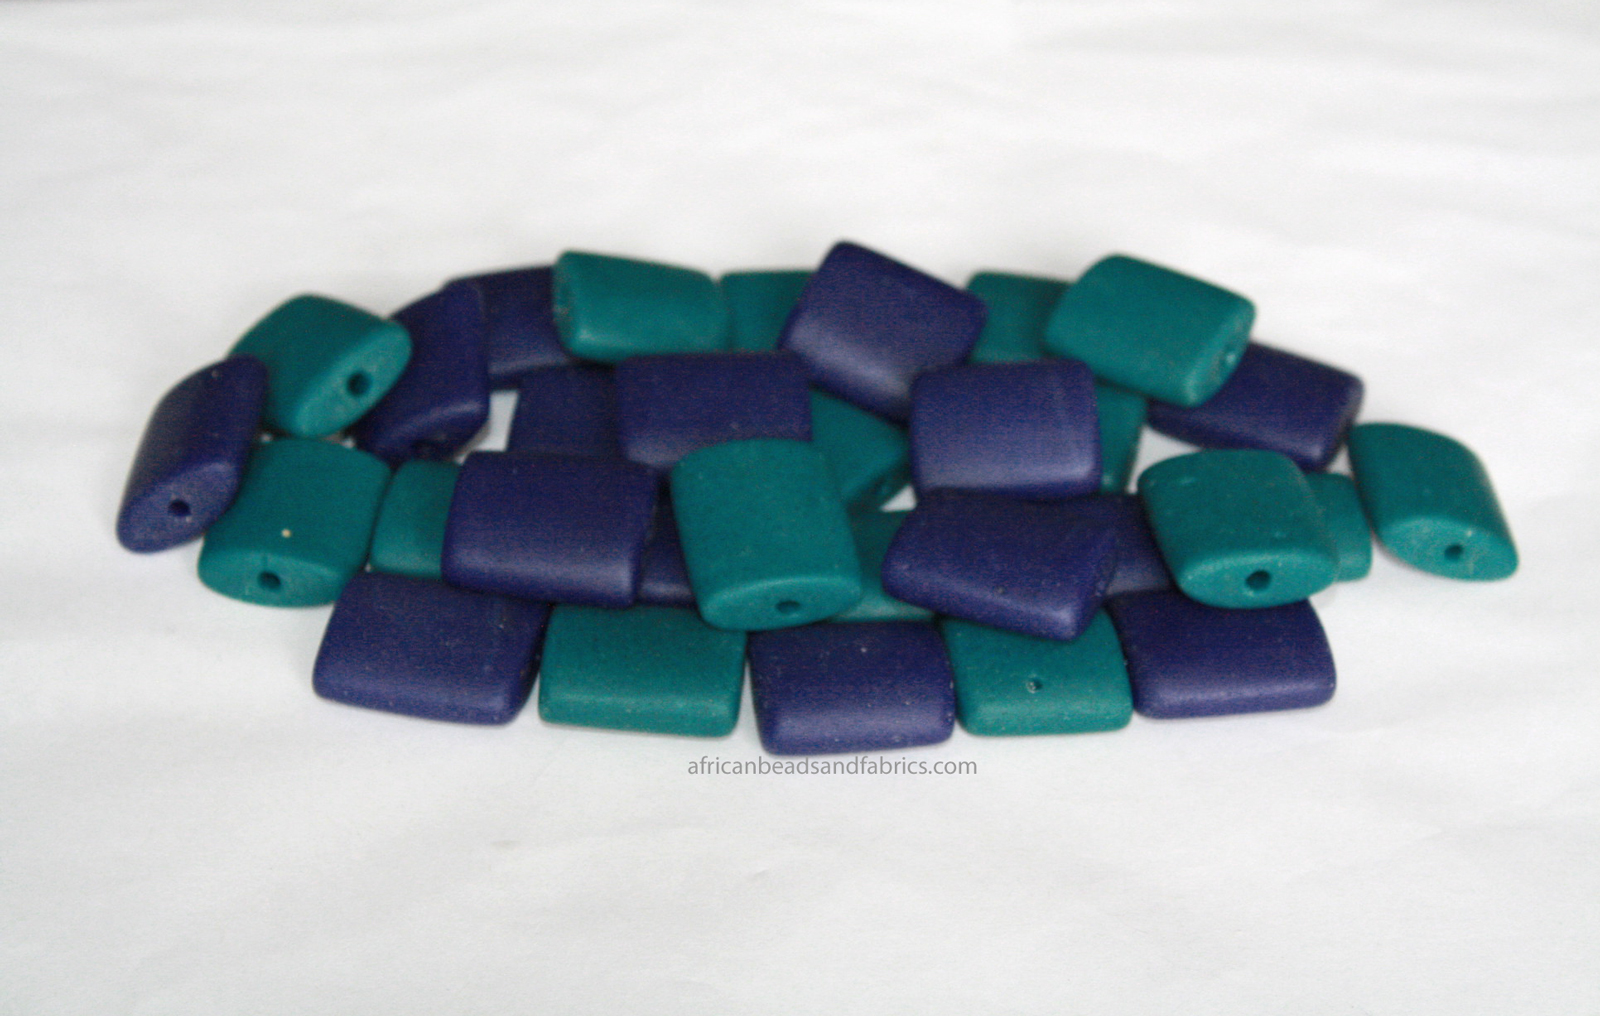 African-Beads-Ghana-Recylcled-Glass-Rectangle-teal-cobalt-blue-watermarked